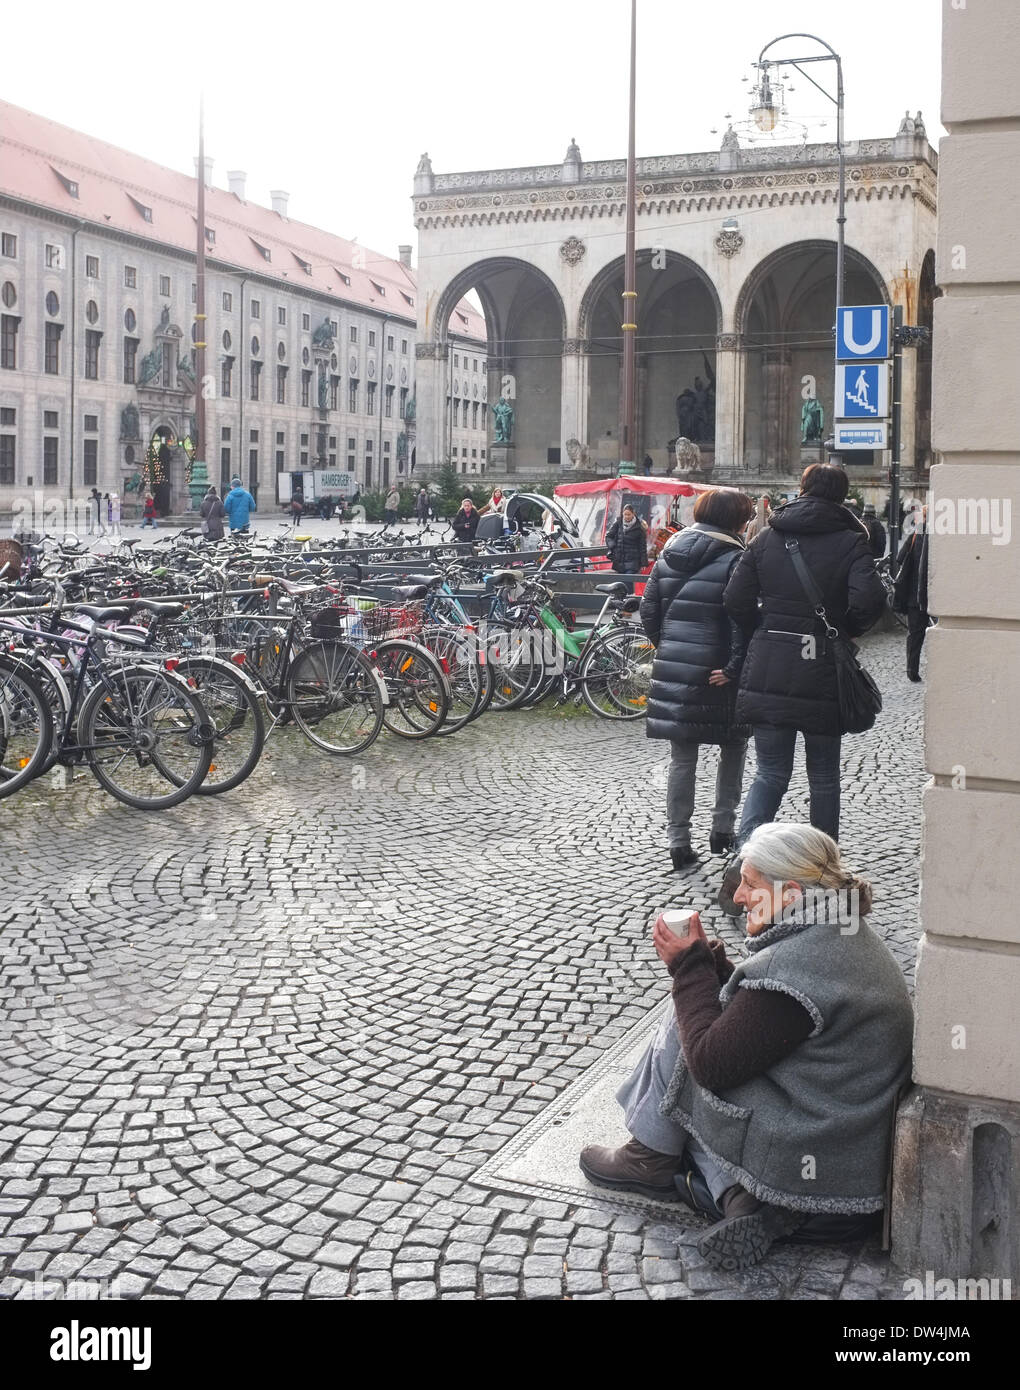 Female beggar in Munich in December 2013. - Stock Image